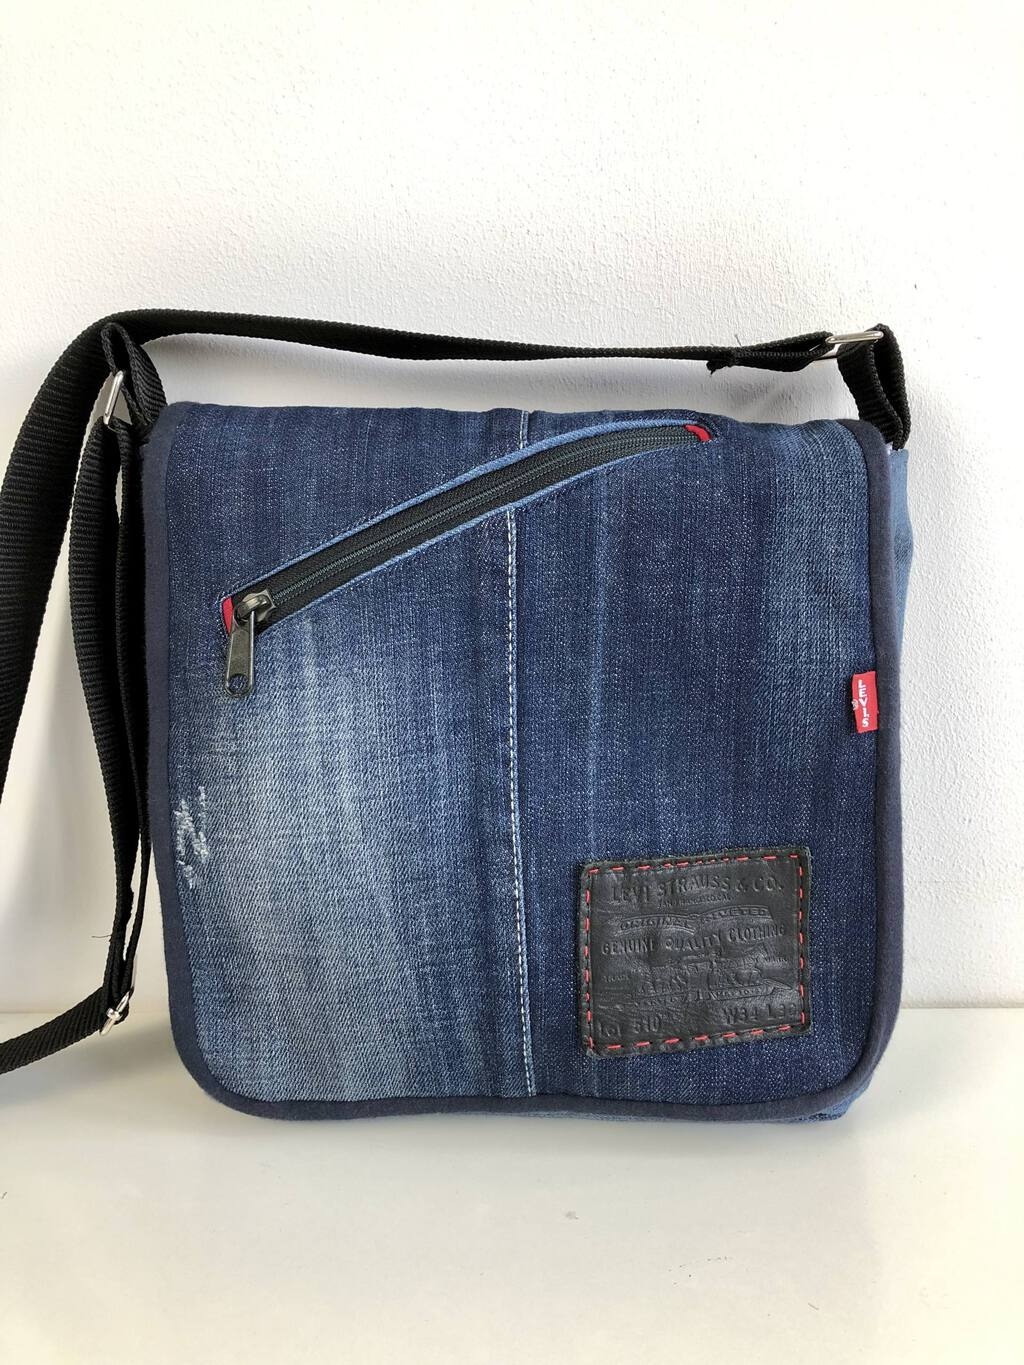 Sew a professional bag with this free messenger bag pattern 52